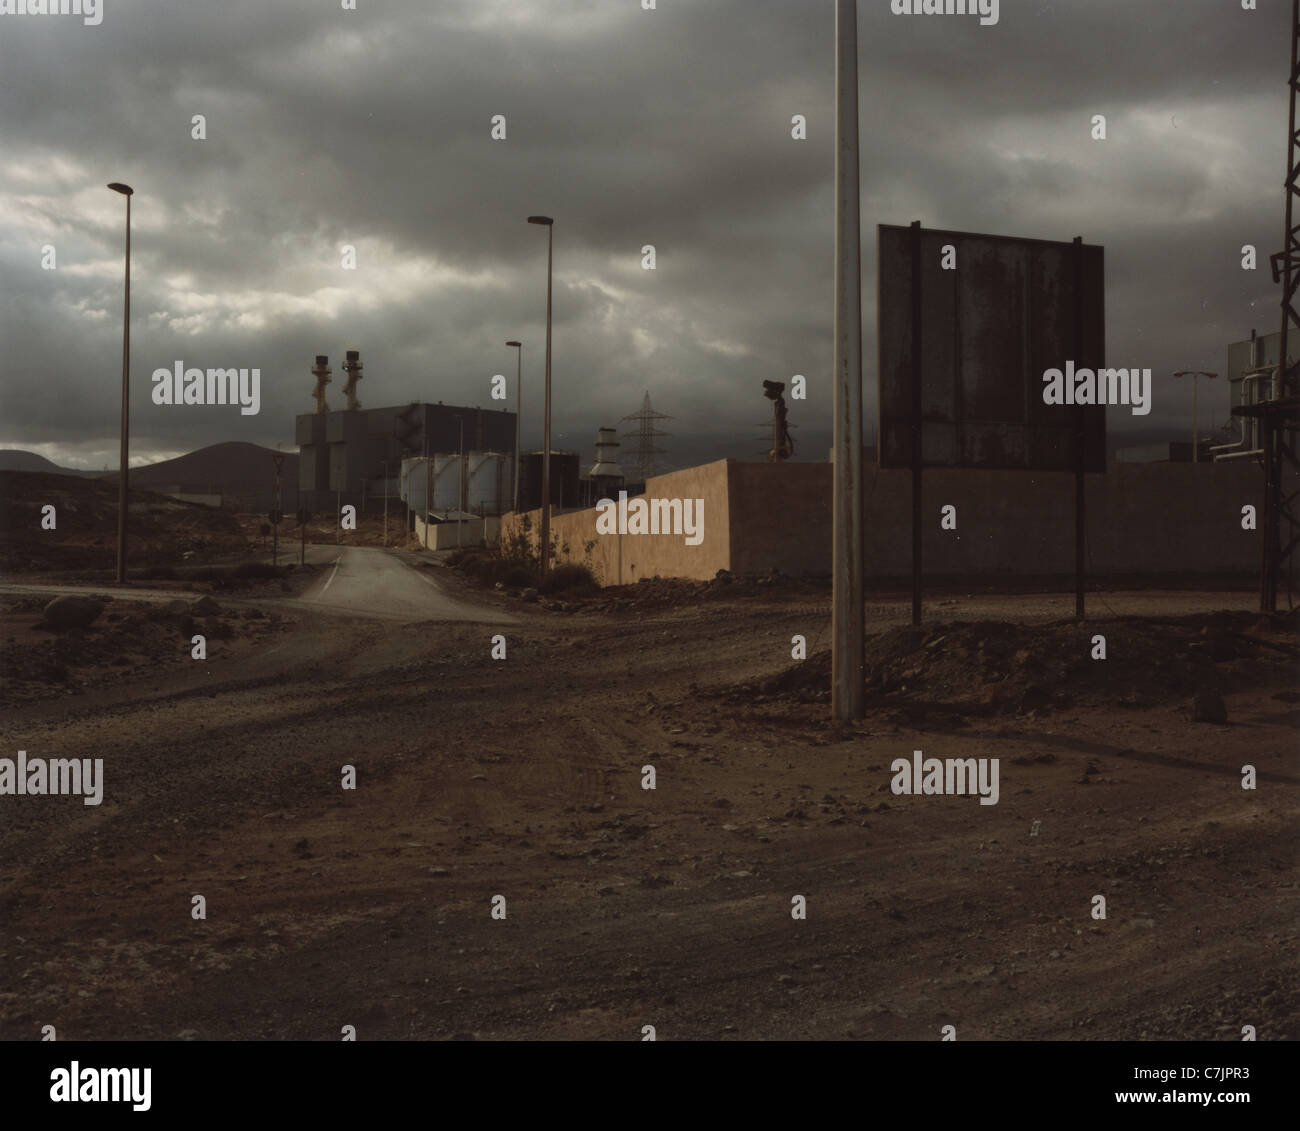 Industrial buildings on dirt road - Stock Image